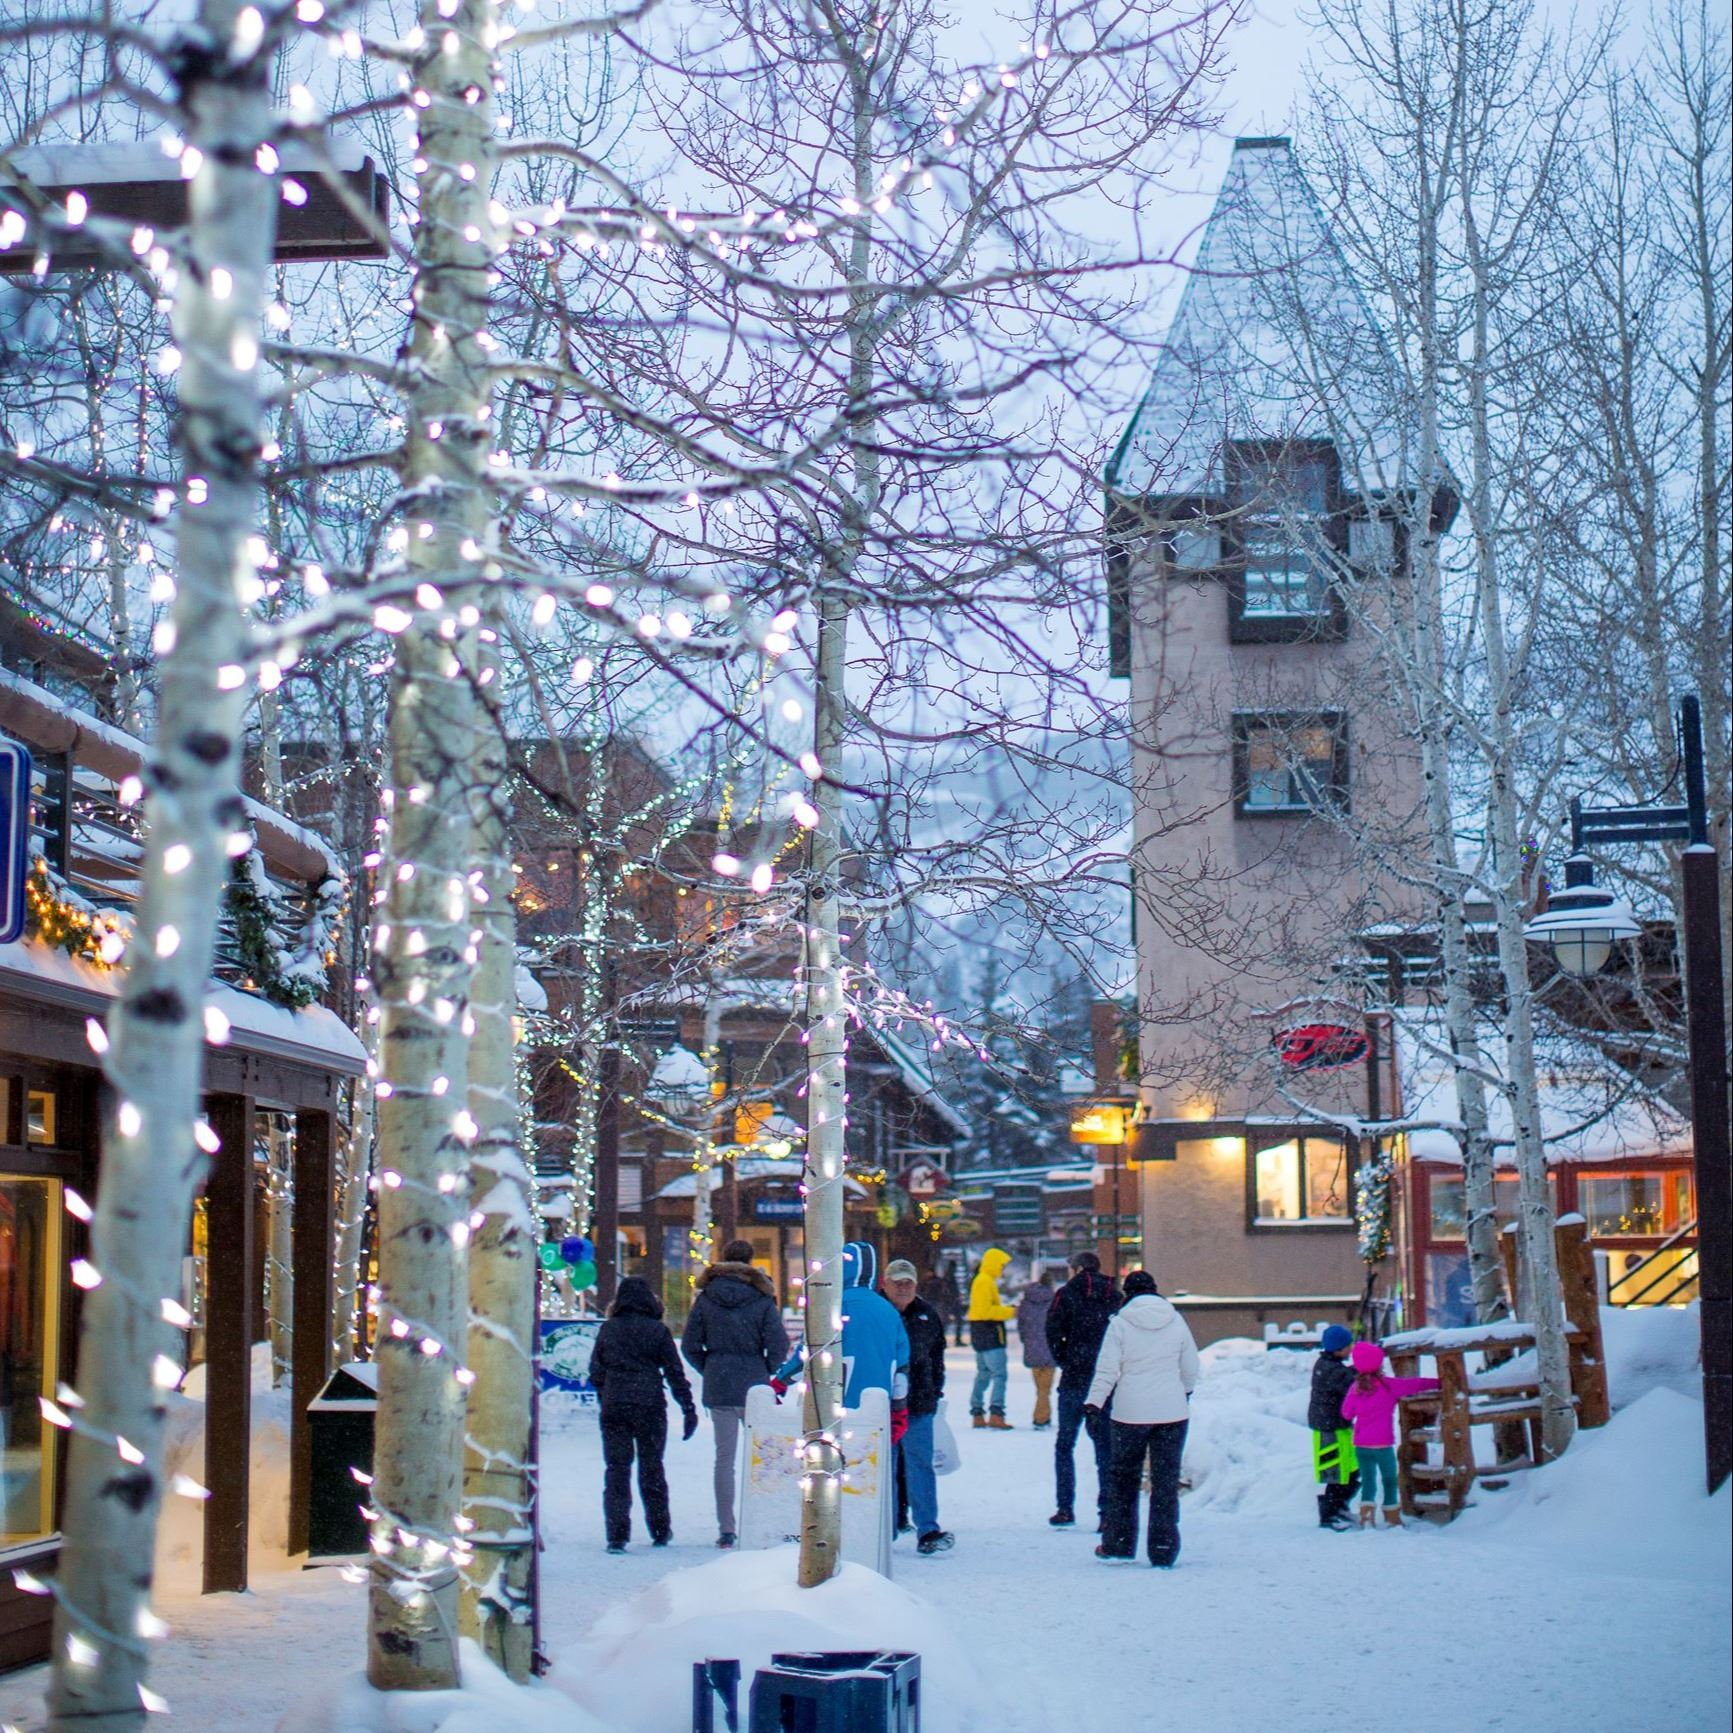 snowmass mall in the winter, with snow on ground